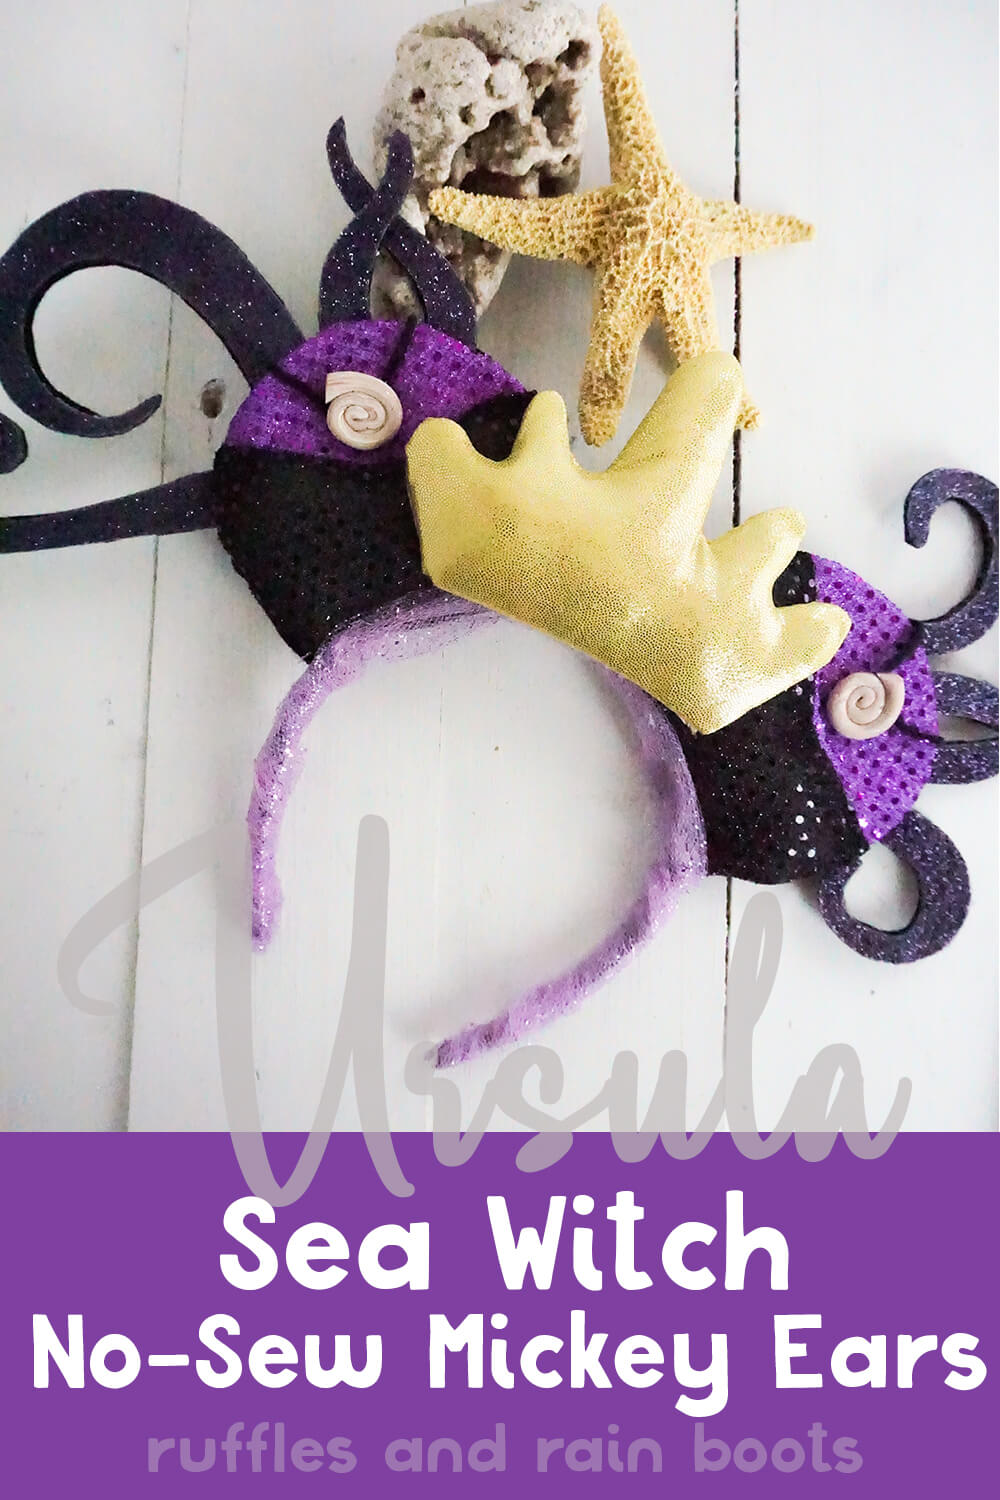 overhead view of mickey ears with tentacles like ursula the sea witch Ursula sea witch on a white wood table with text which reads no-sew mickey ears